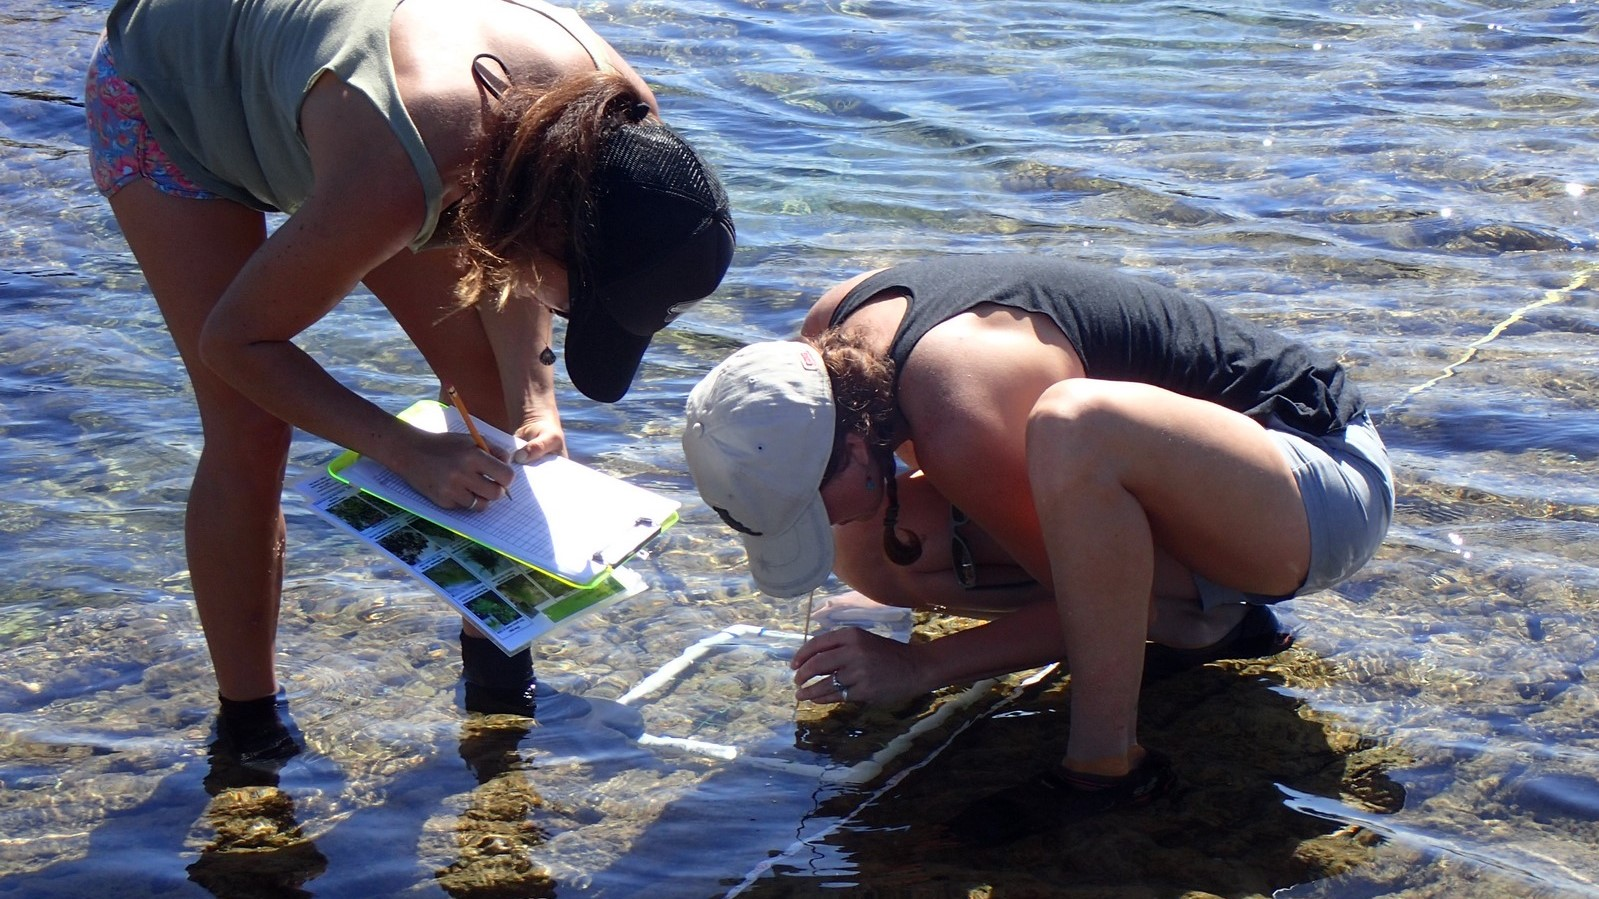 Two women in tidal pool collect data with measuring device and clip board.